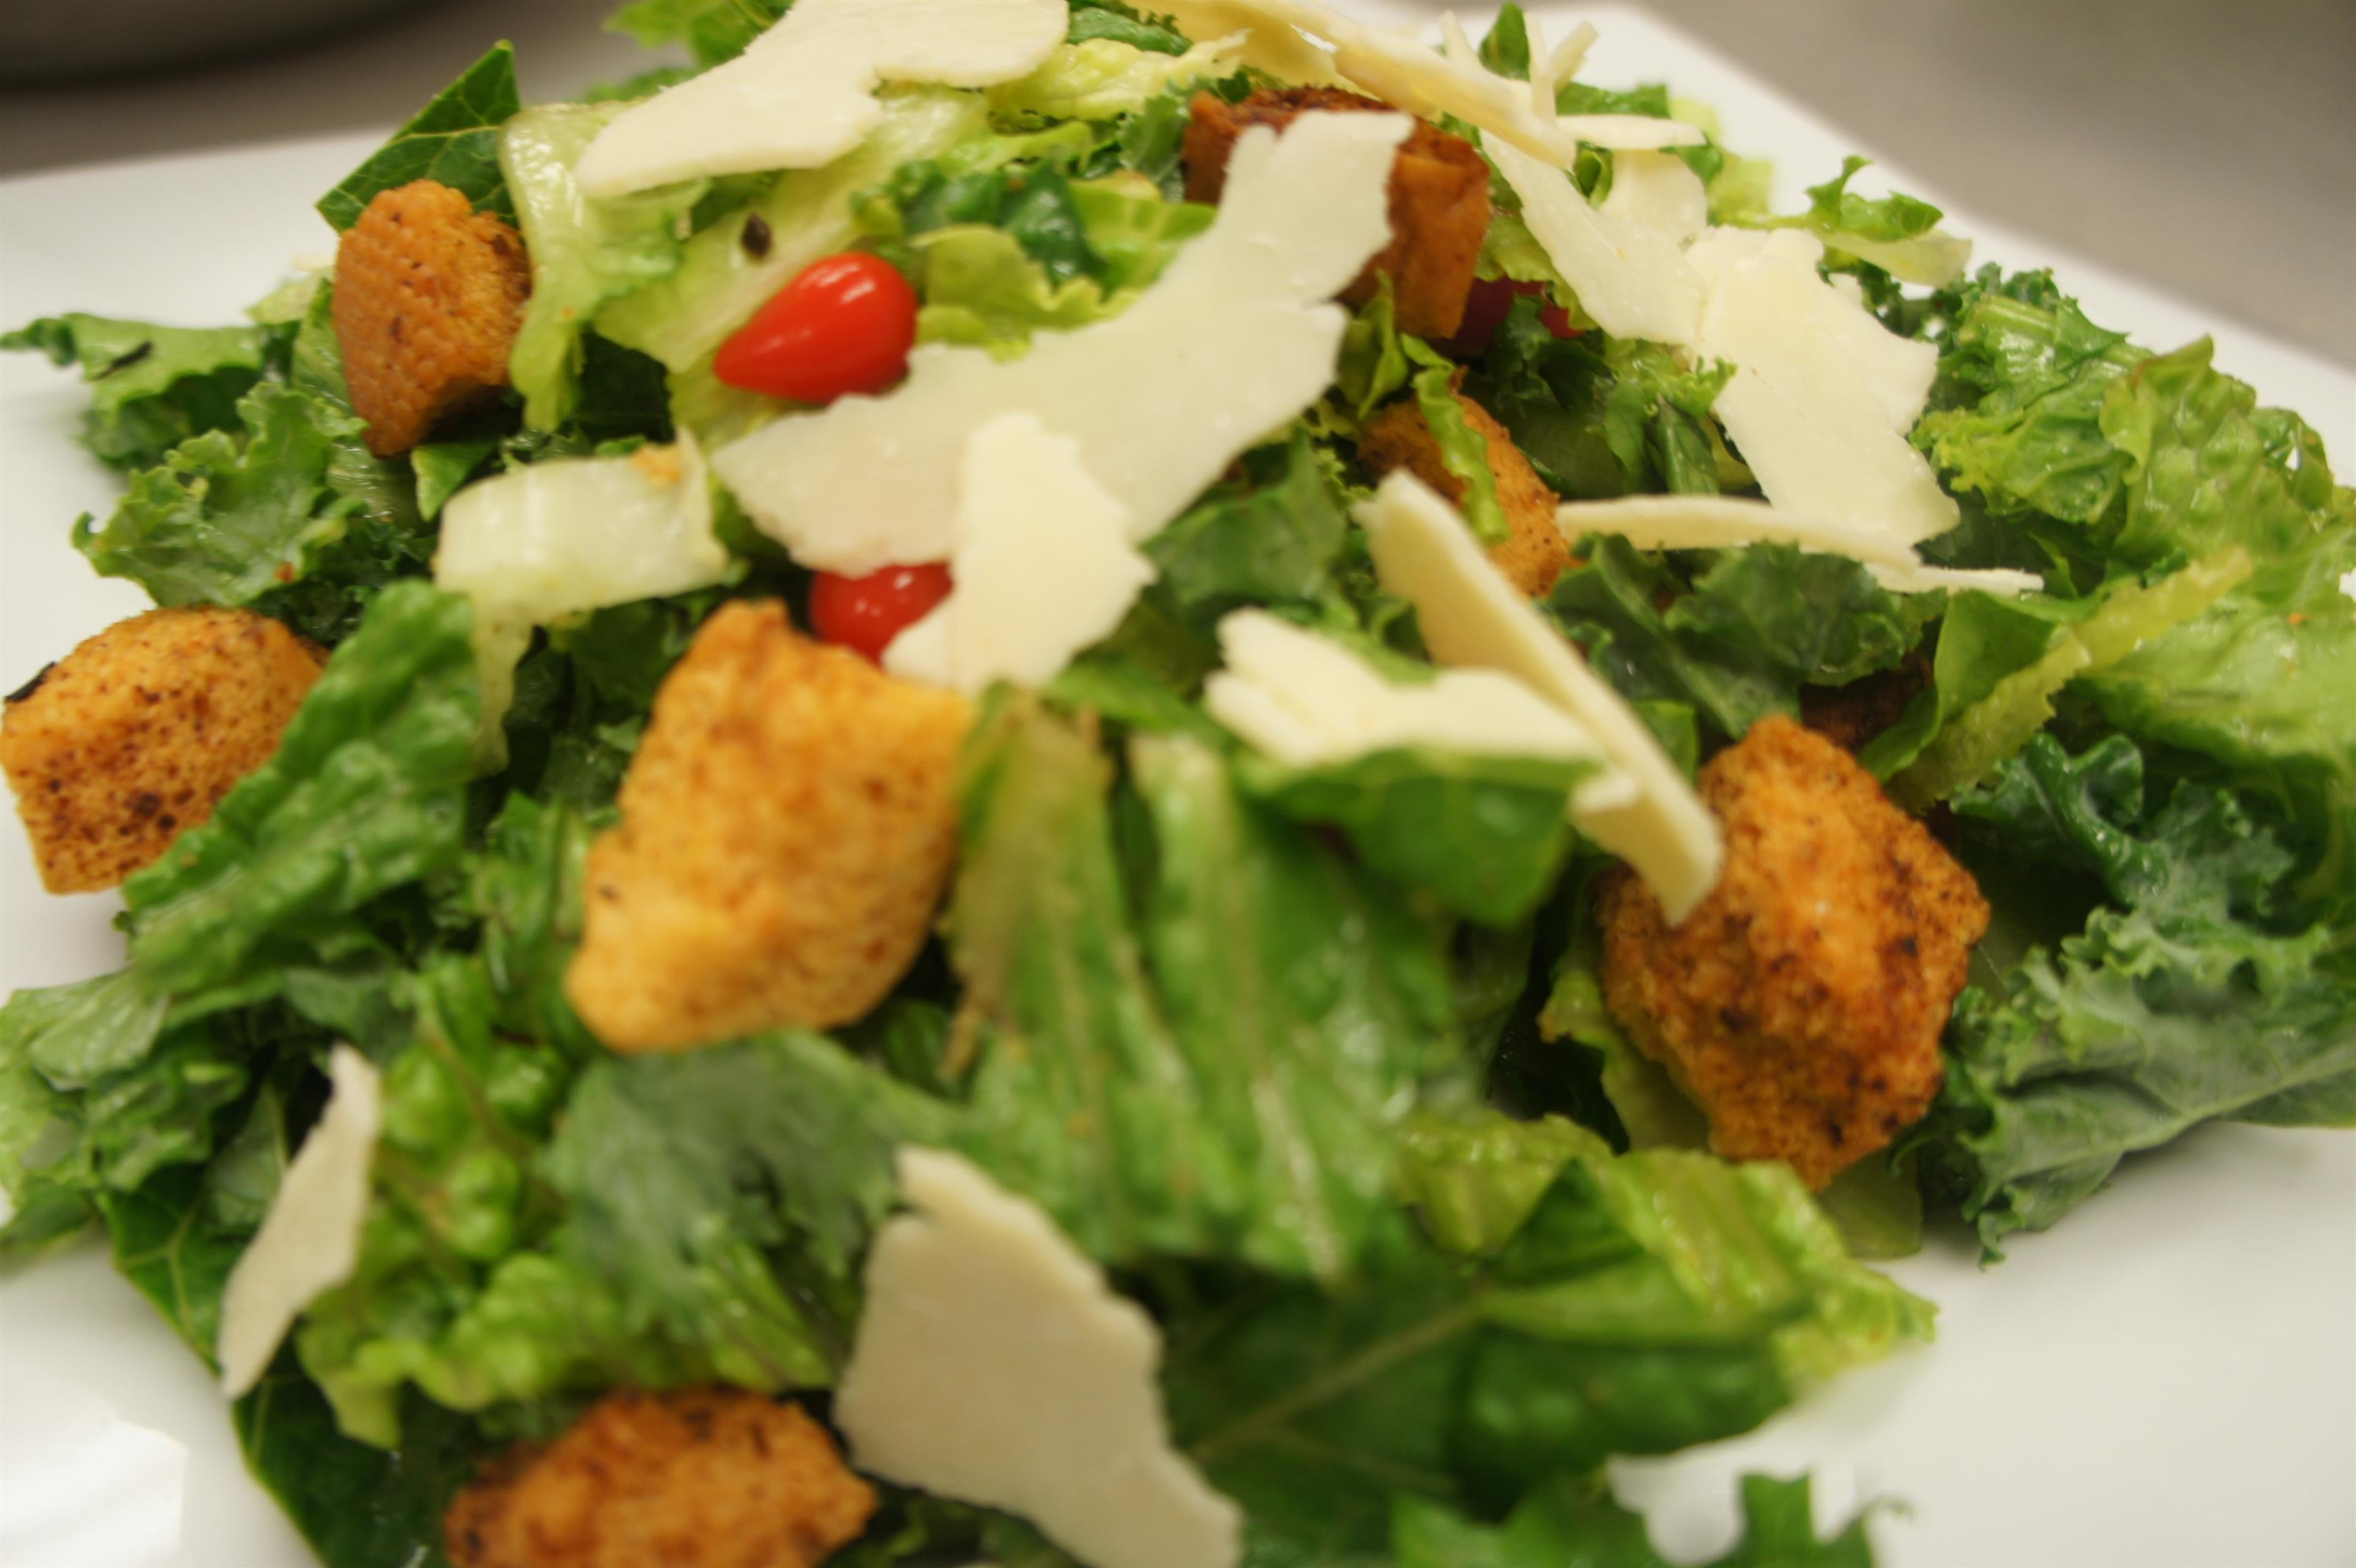 Caesar salad with crispy romaine lettuce with sweet drop peppers, shaved Parmesan and rosemary croutons